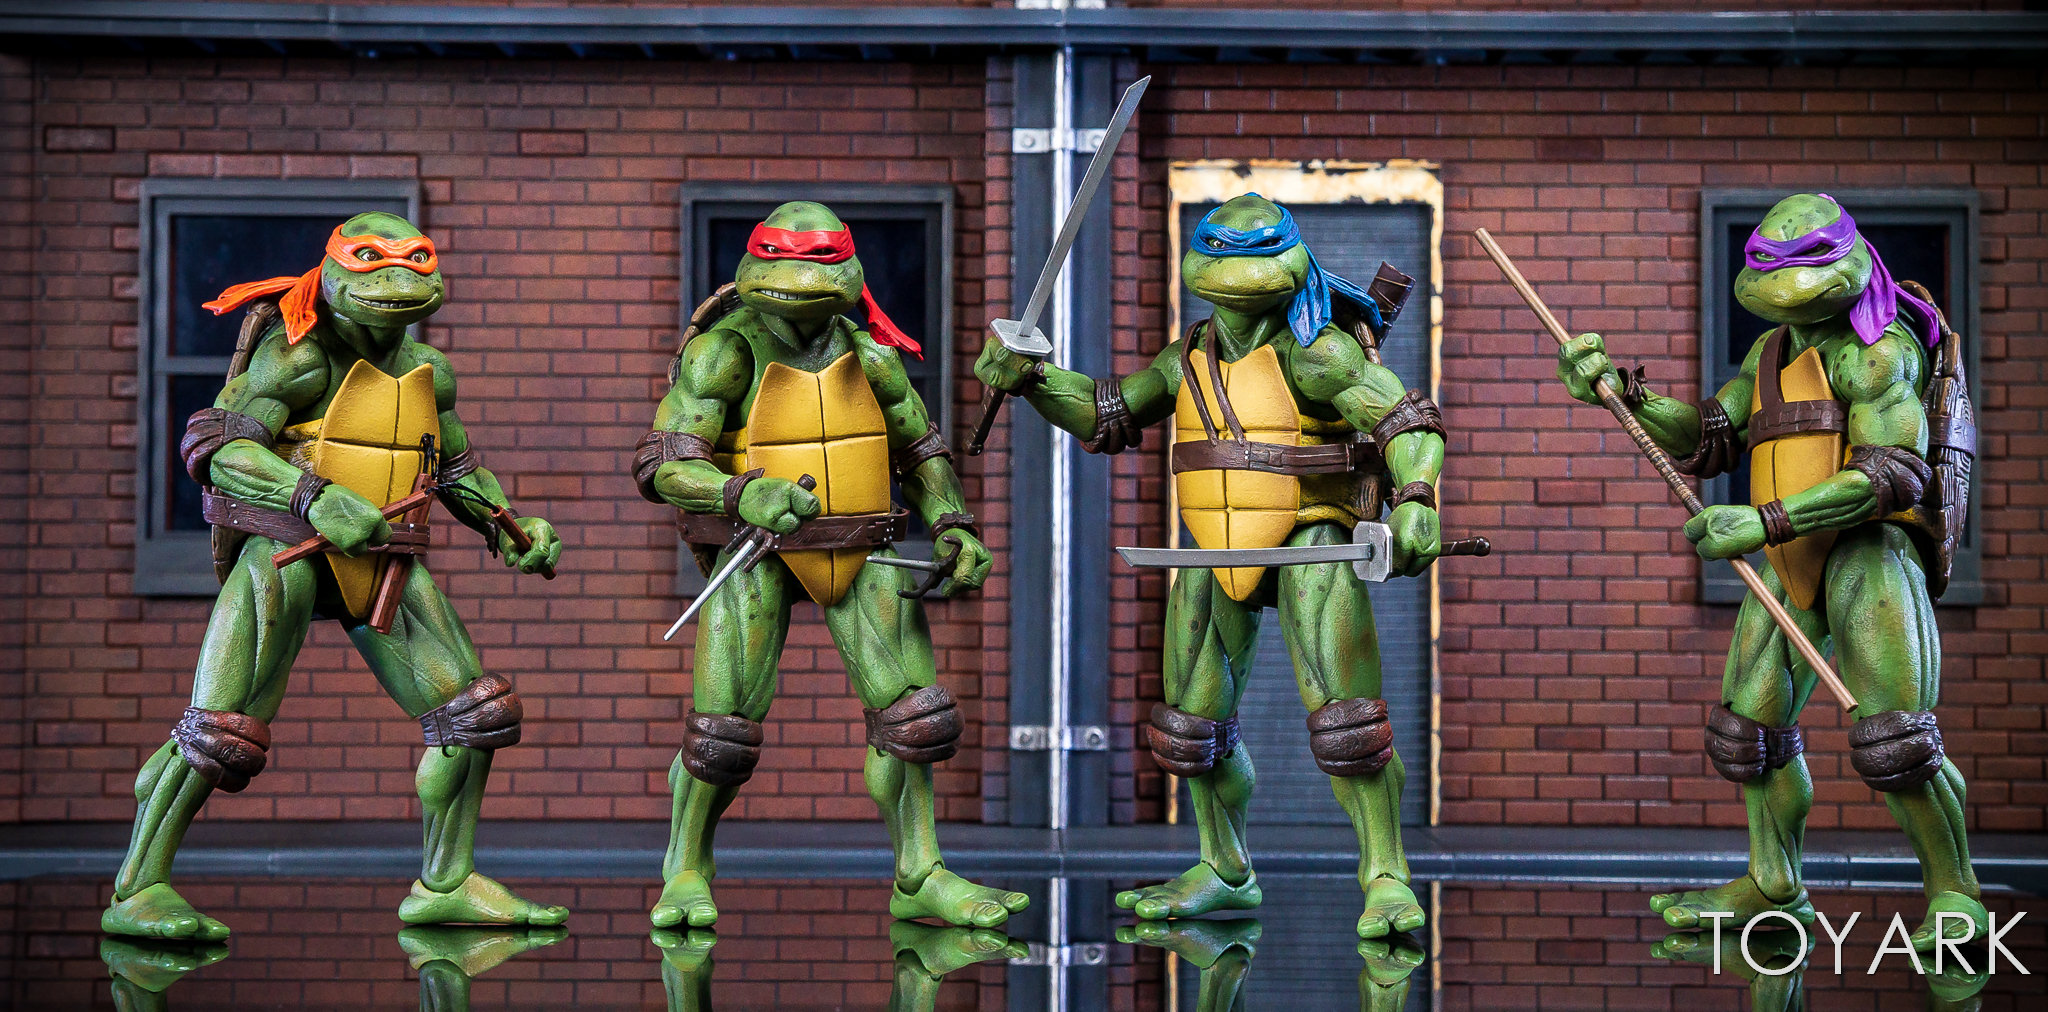 https://news.toyark.com/wp-content/uploads/sites/4/2018/07/NECA-TMNT-1990-and-Dio-Set-054.jpg